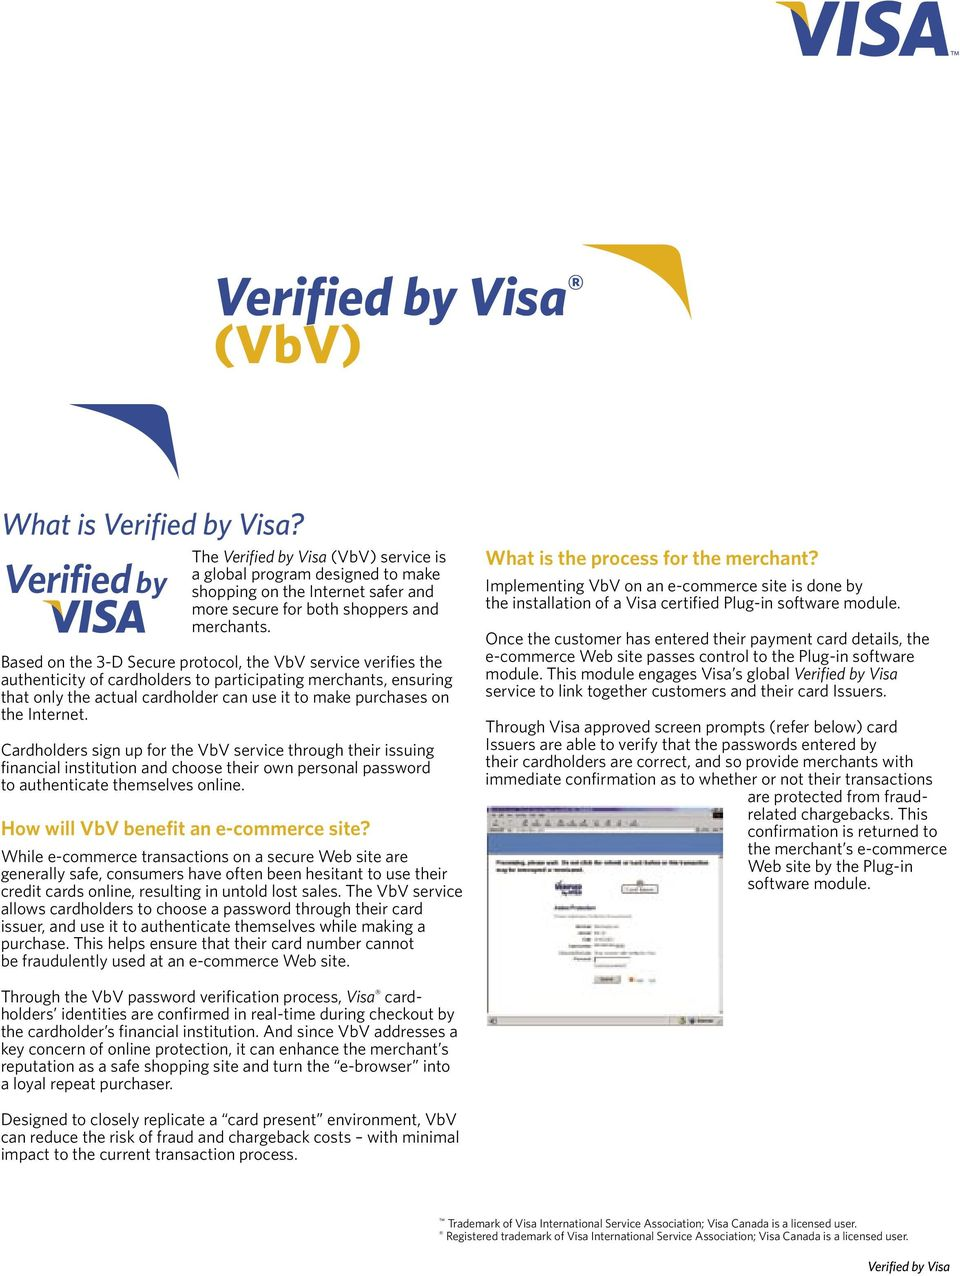 Internet. Cardholders sign up for the VbV service through their issuing financial institution and choose their own personal password to authenticate themselves online.